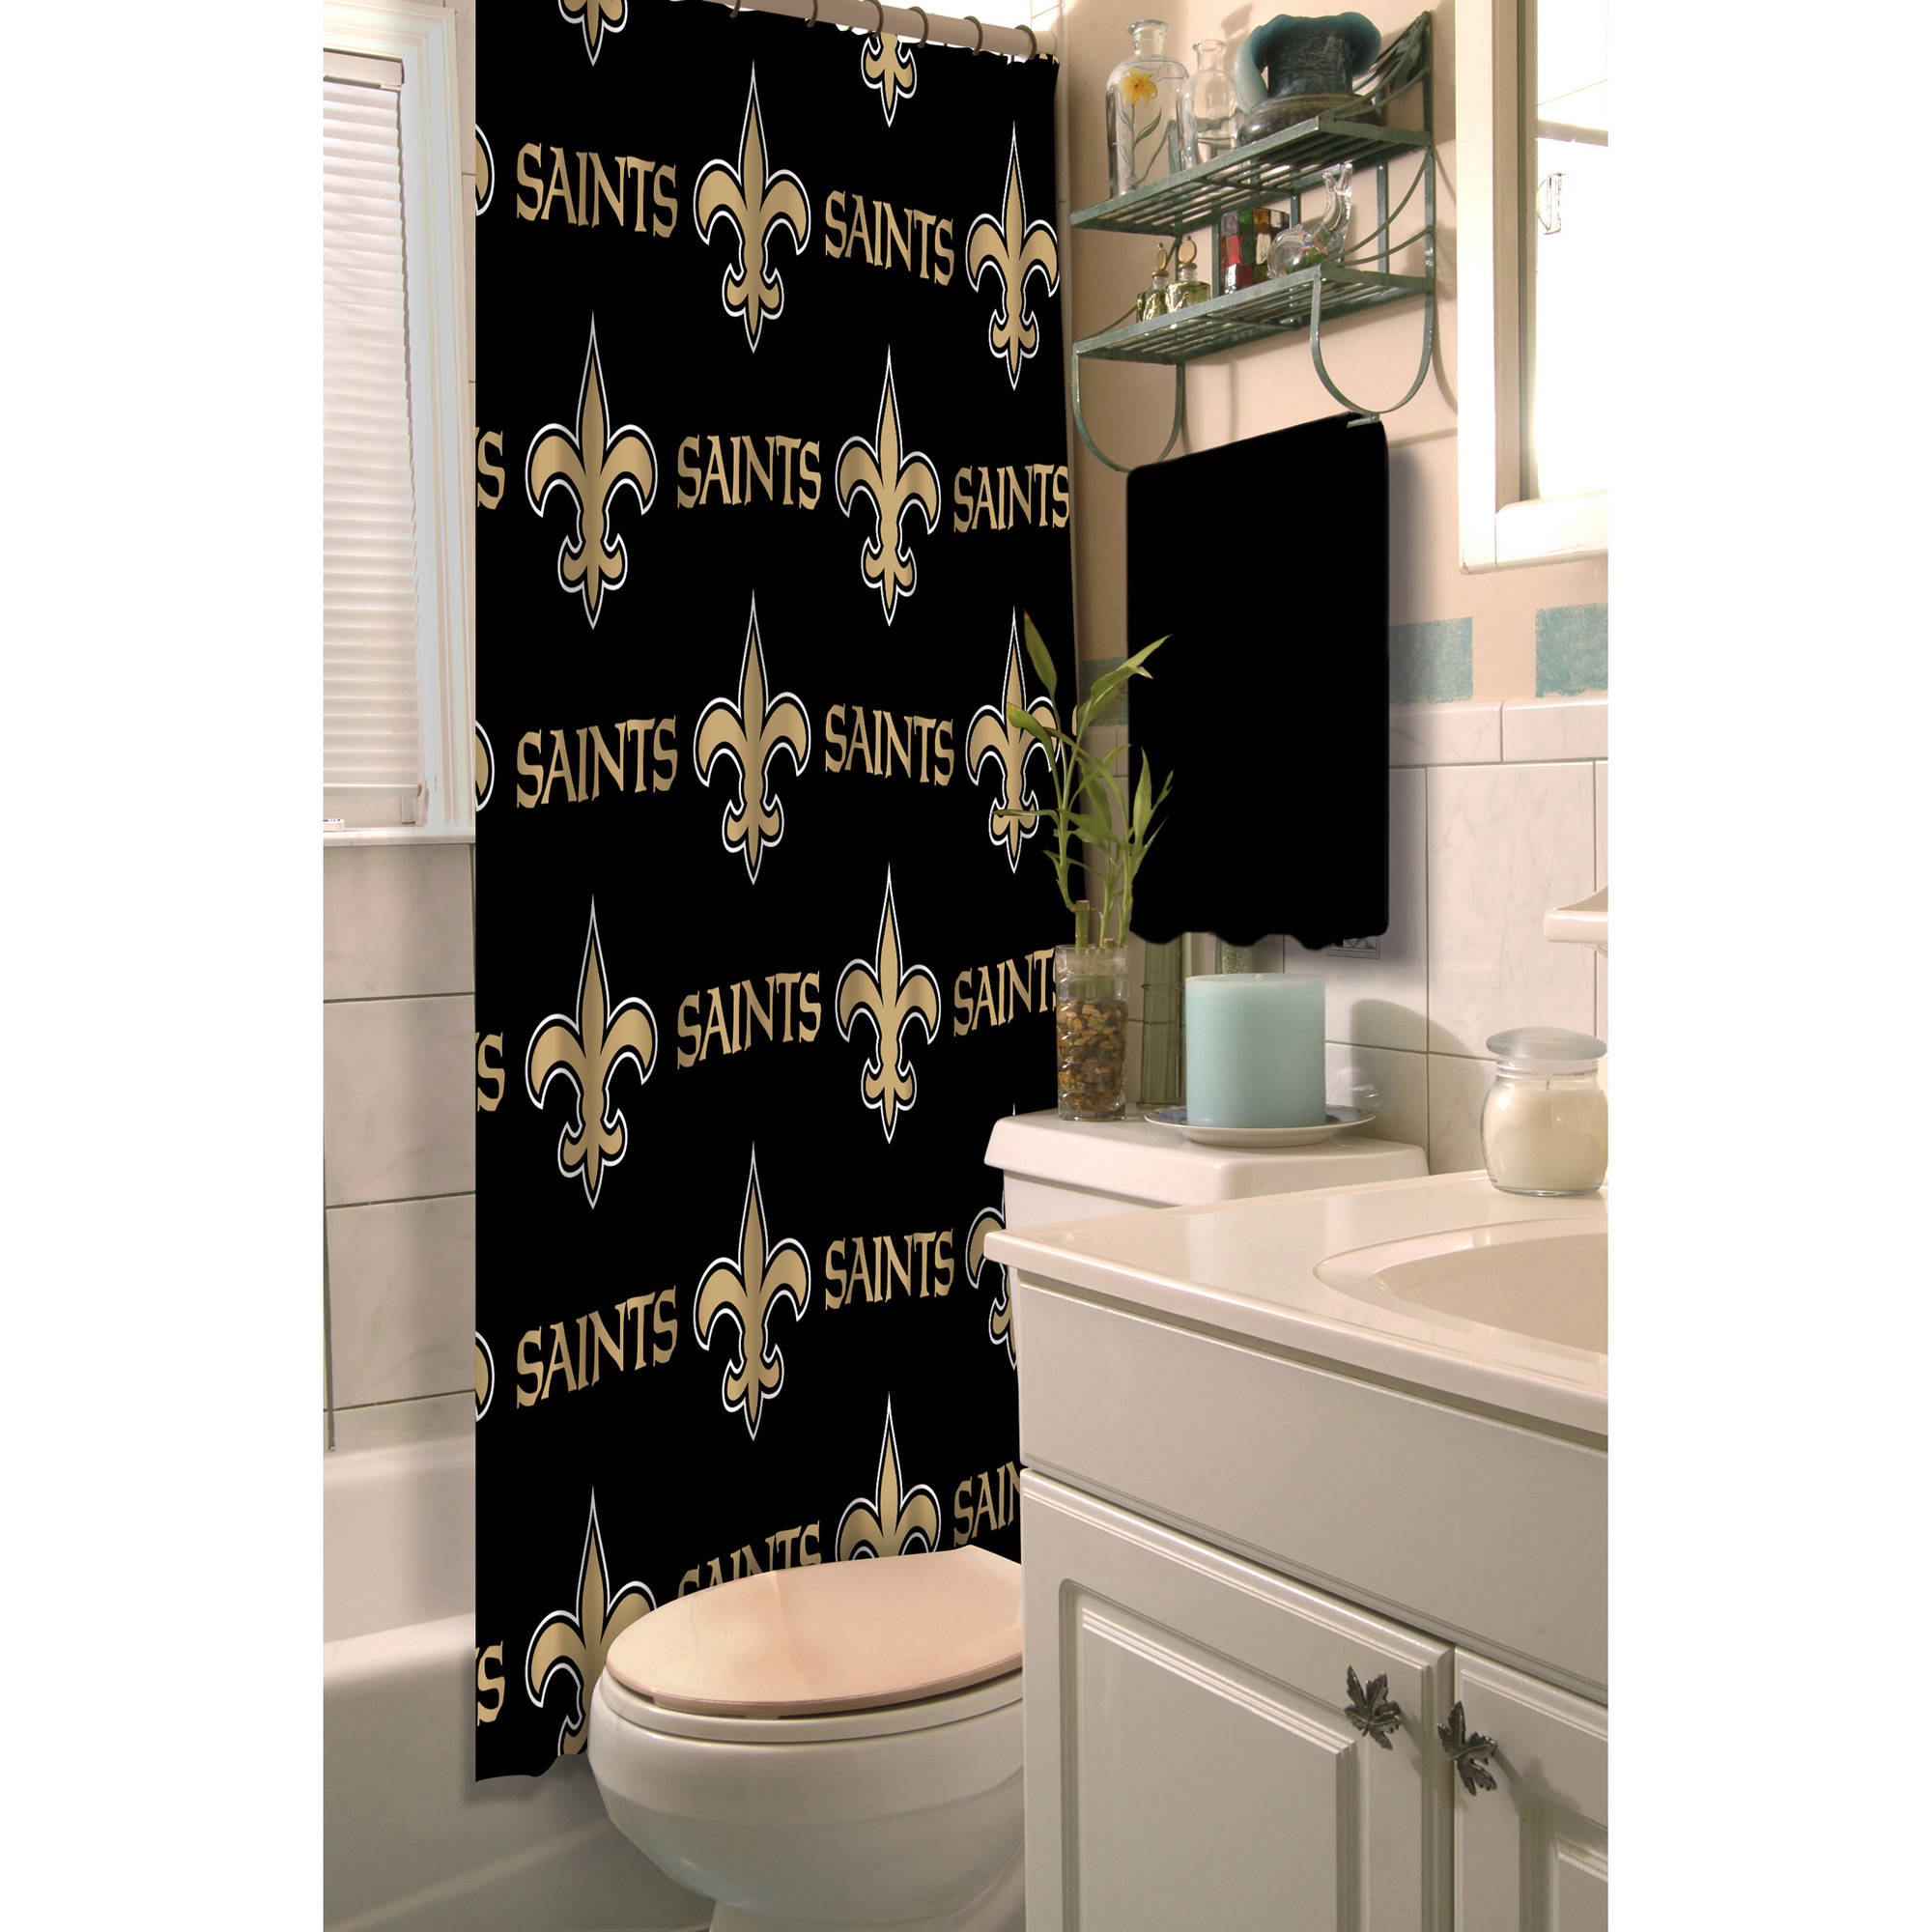 NFL New Orleans Saints Decorative Bath Collection - Shower Curtain